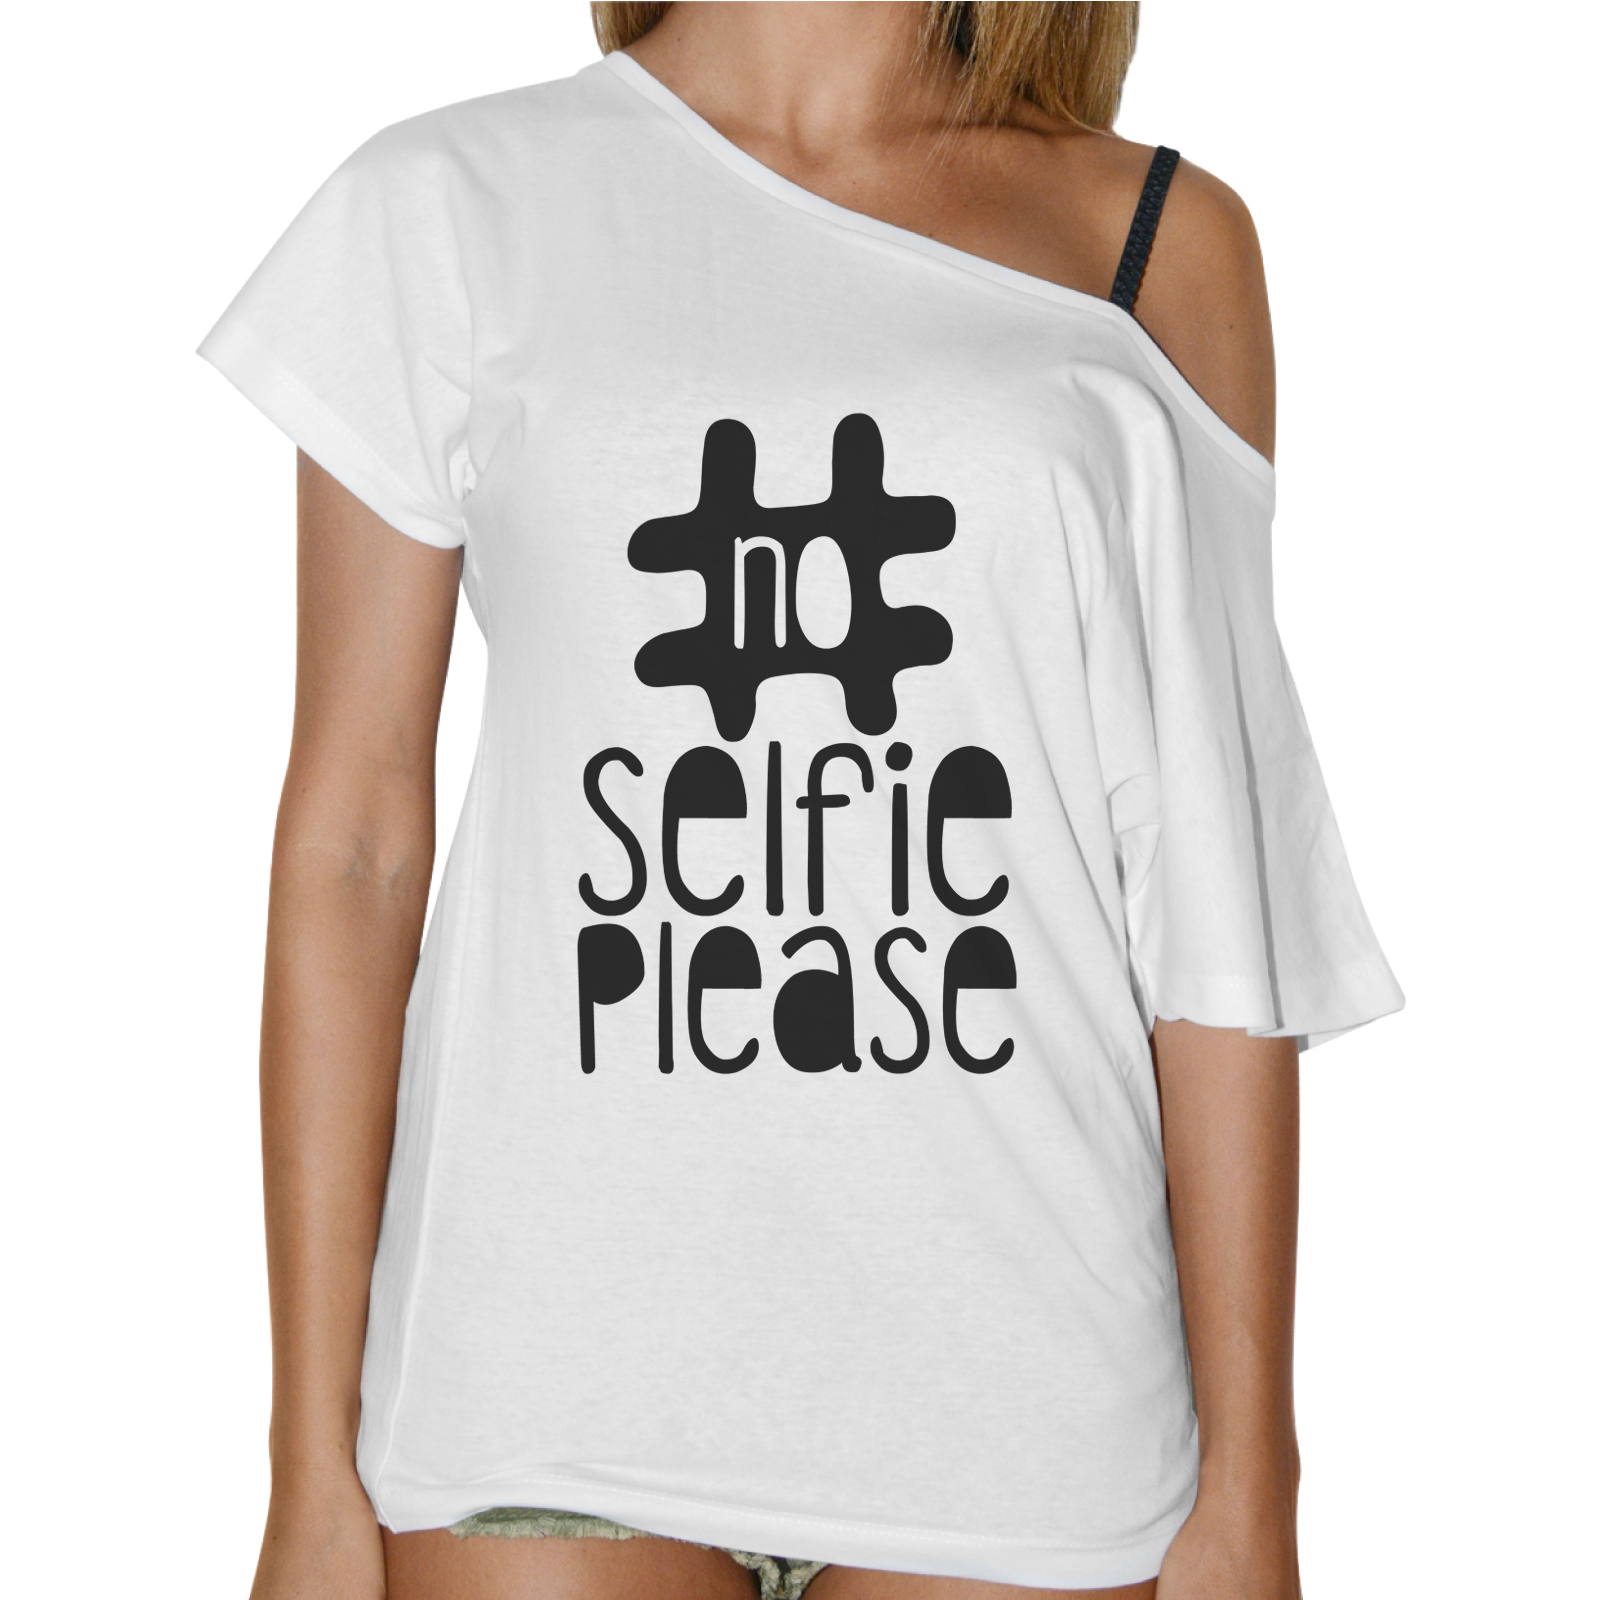 T-Shirt Donna Collo Barca NO SELFIE PLEASE